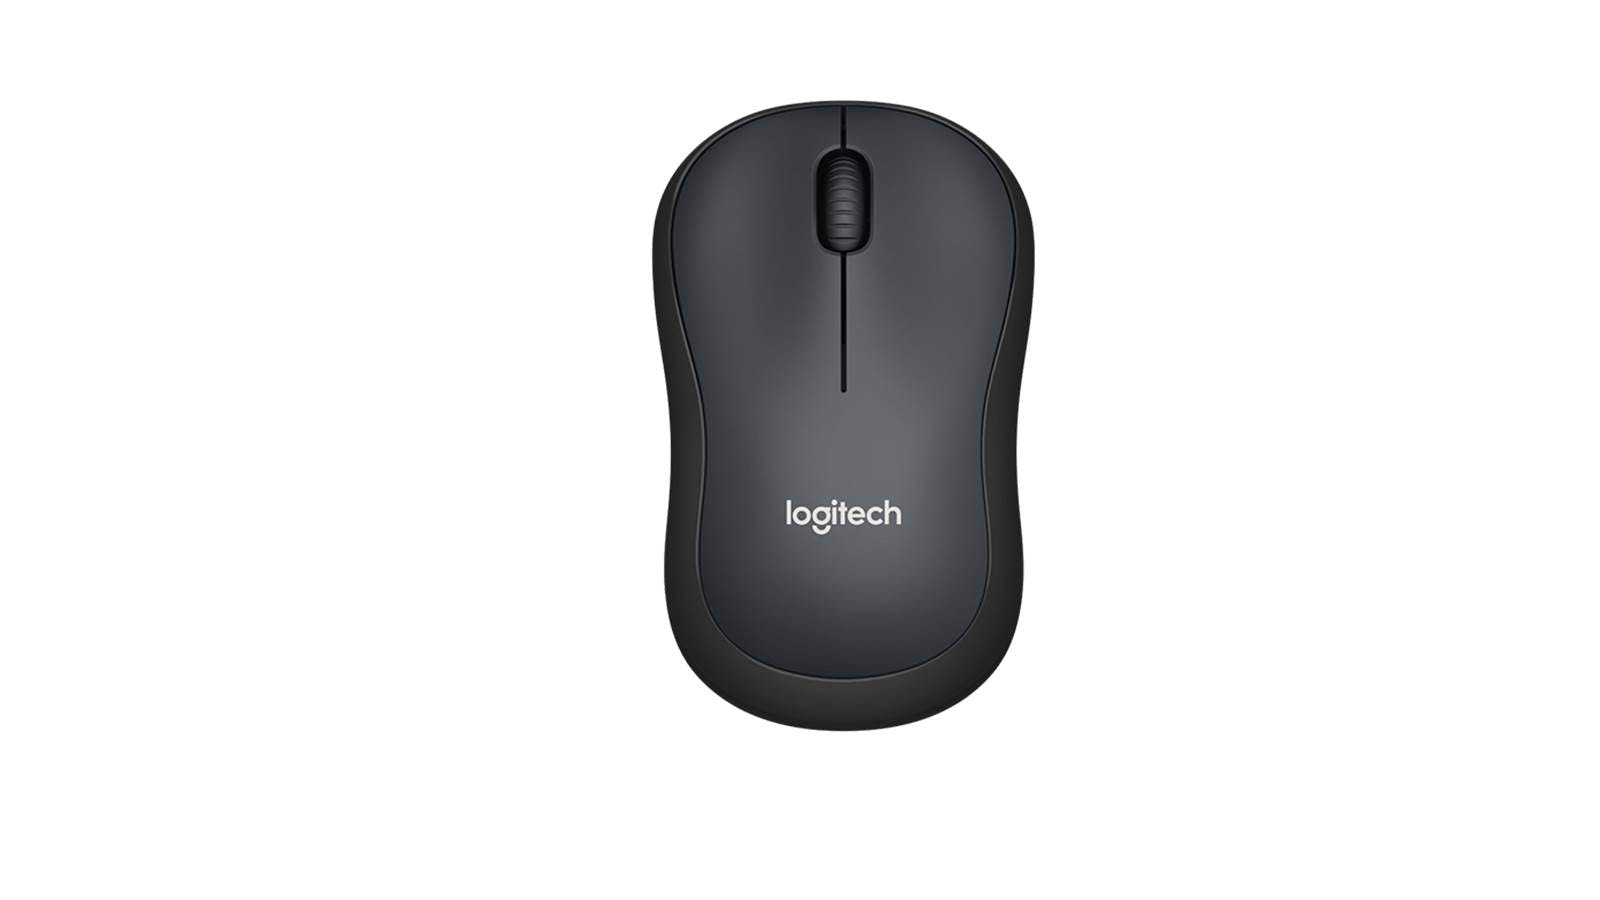 Home :: Computing :: Computer Accessories & Peripherals :: Keyboards, Mice  & Mats :: Logitech M221 Wireless Mouse - Charcoal